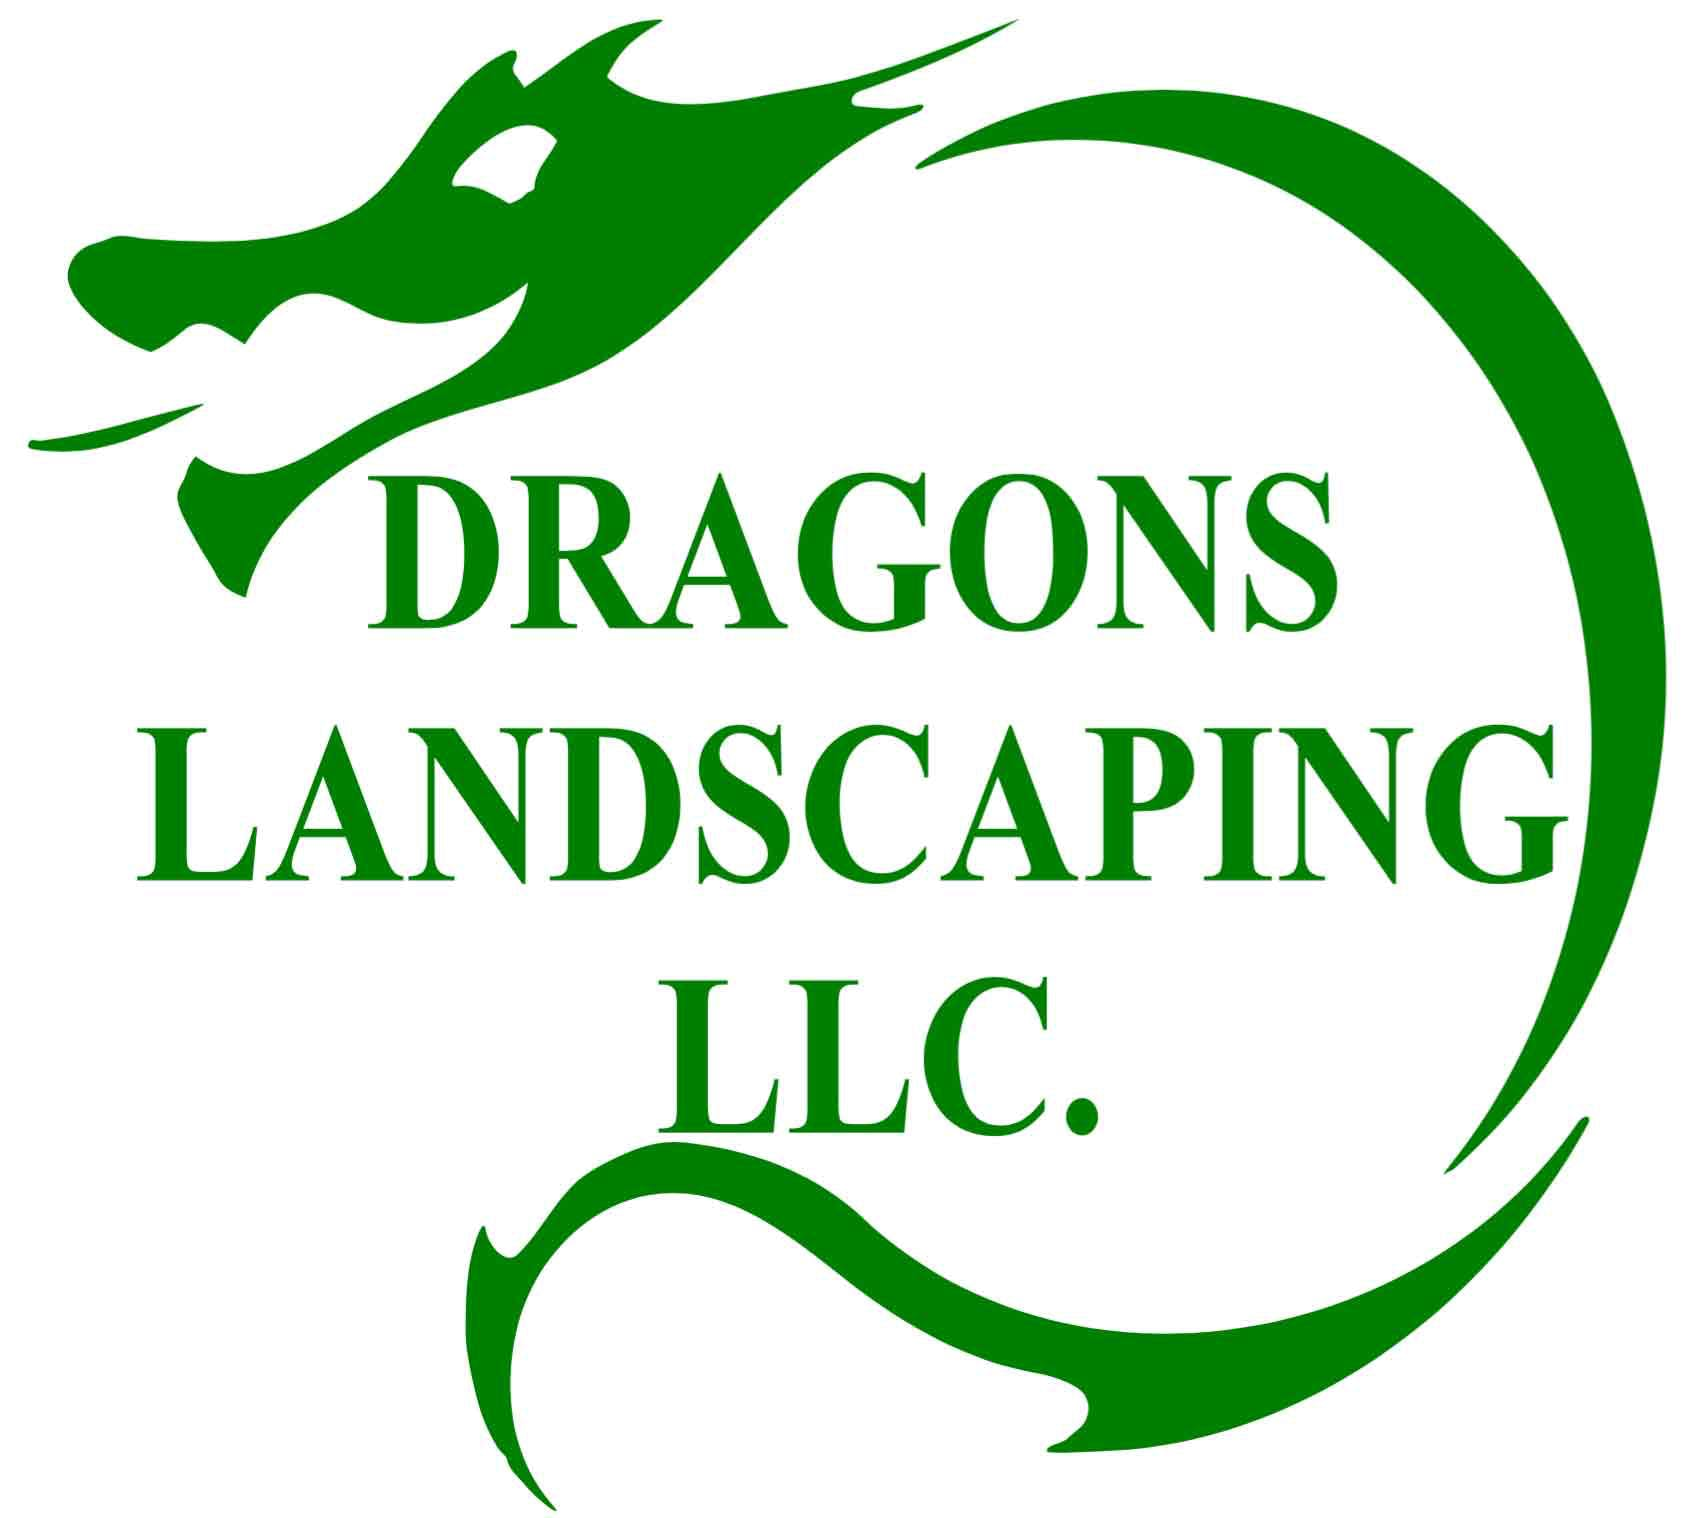 Dragons Landscaping